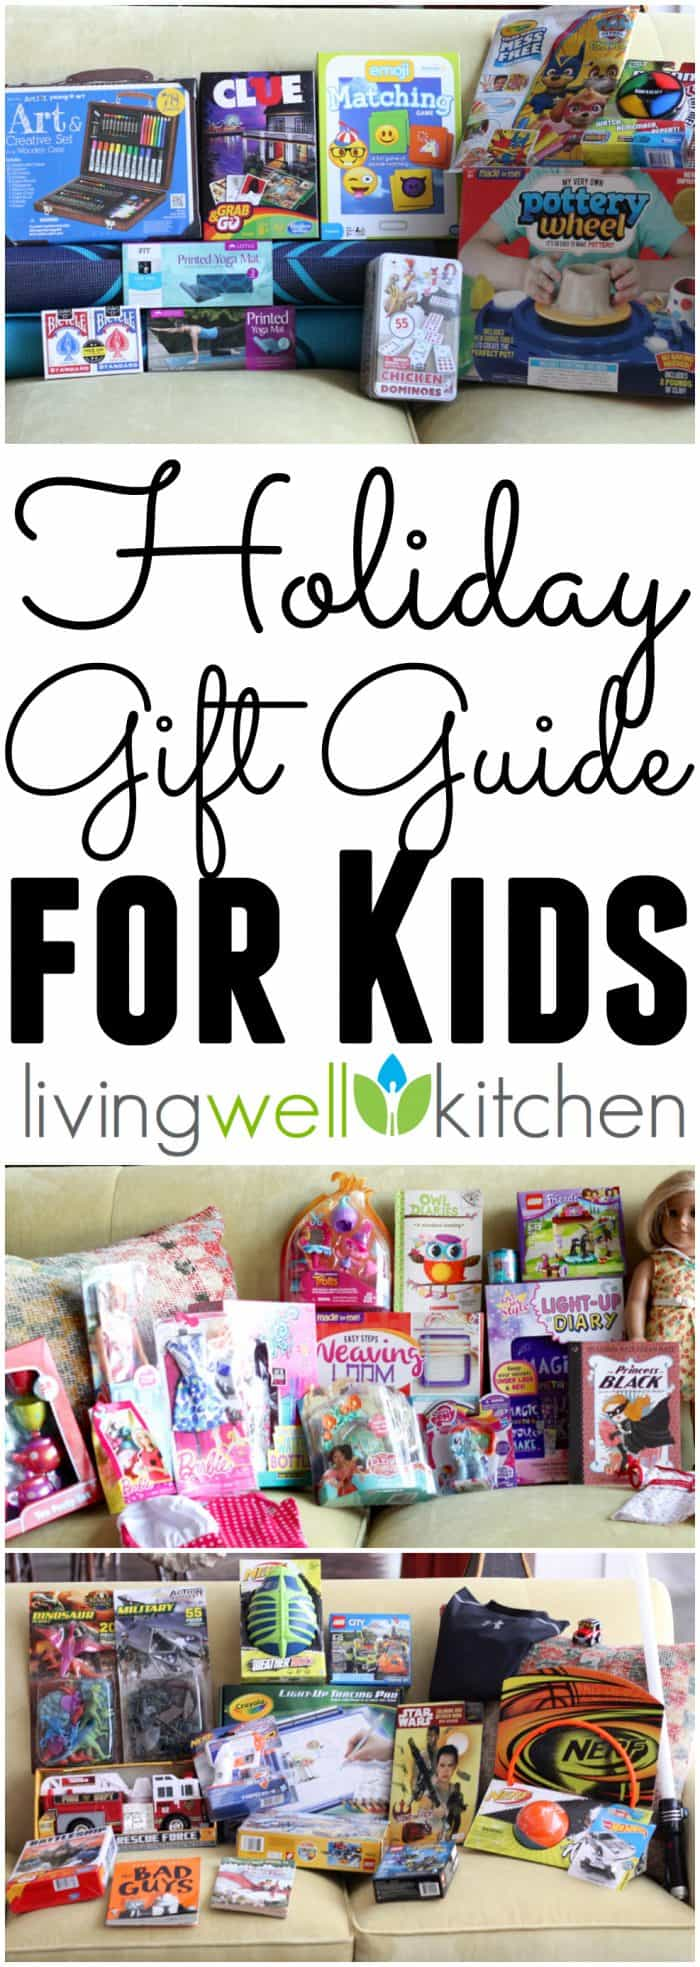 No need to stress about what to give the kids in your life for Christmas. This Holiday Gift Guide from @memeinge created by kids five to ten years old includes tons of options